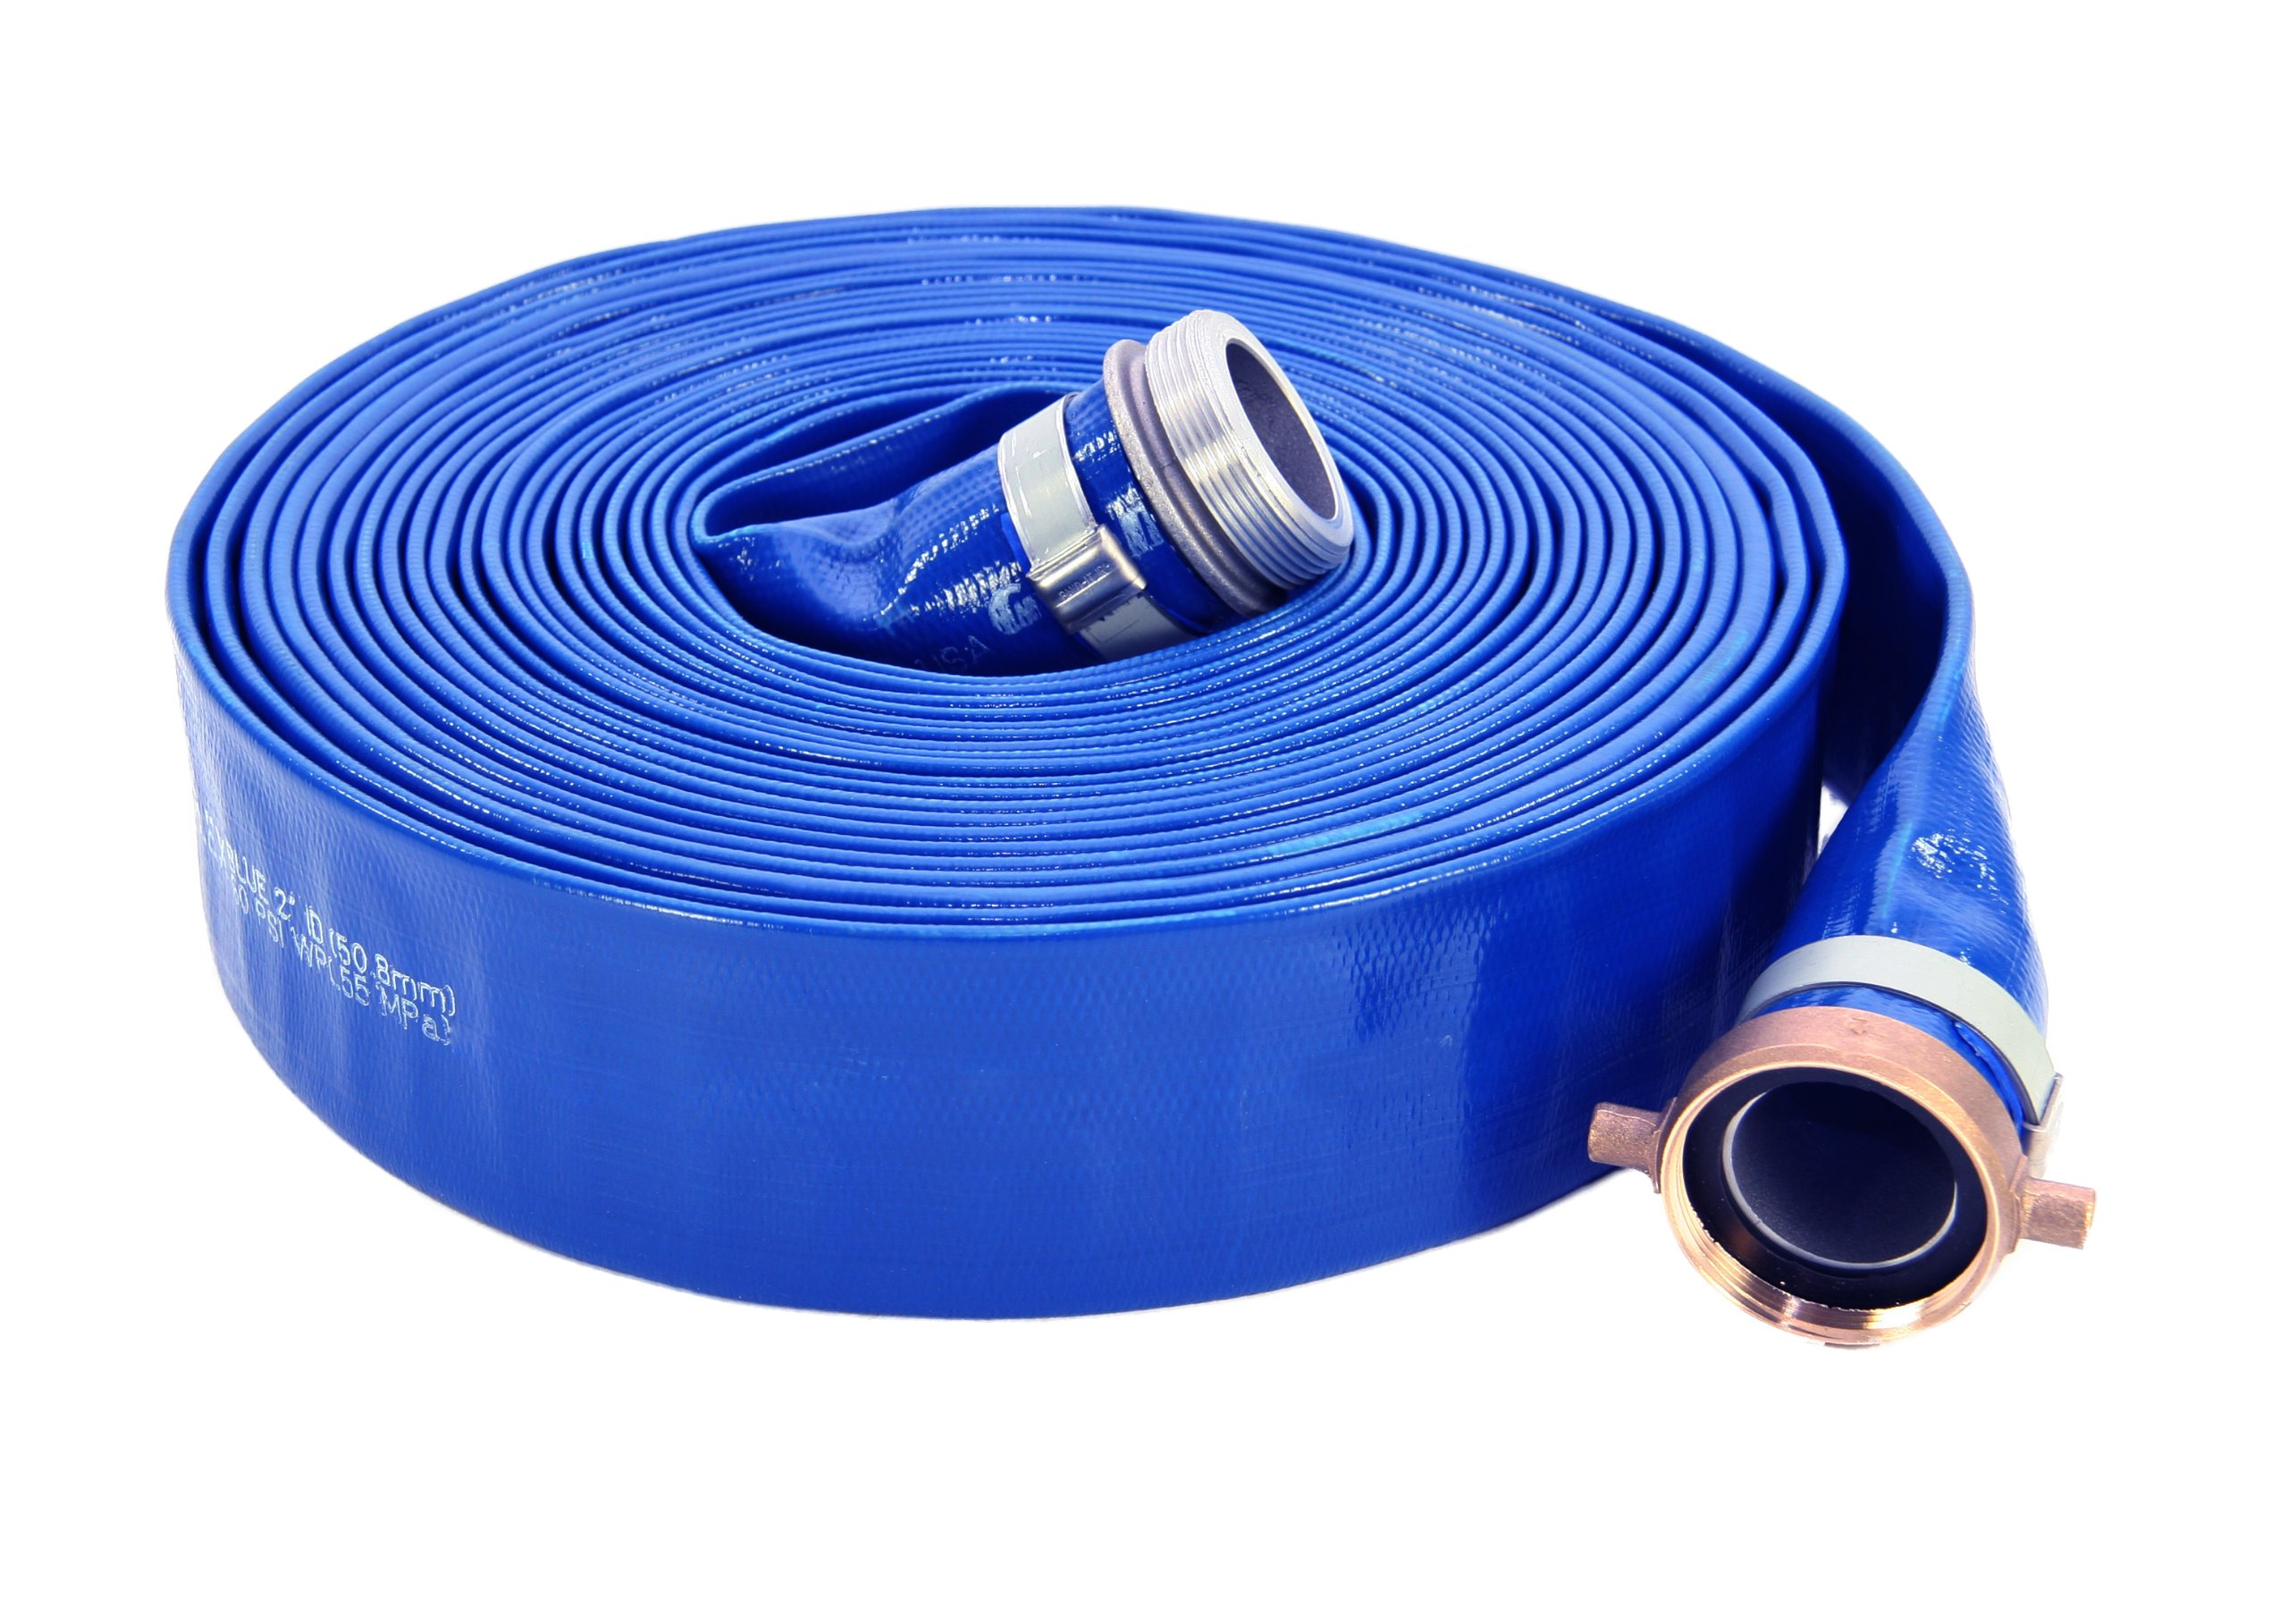 Abbott Rubber PVC Discharge Hose Assembly, Blue, 2'' Male X Female NPSM, 65 psi Max Pressure, 25' Length, 2'' ID by Abbott Rubber